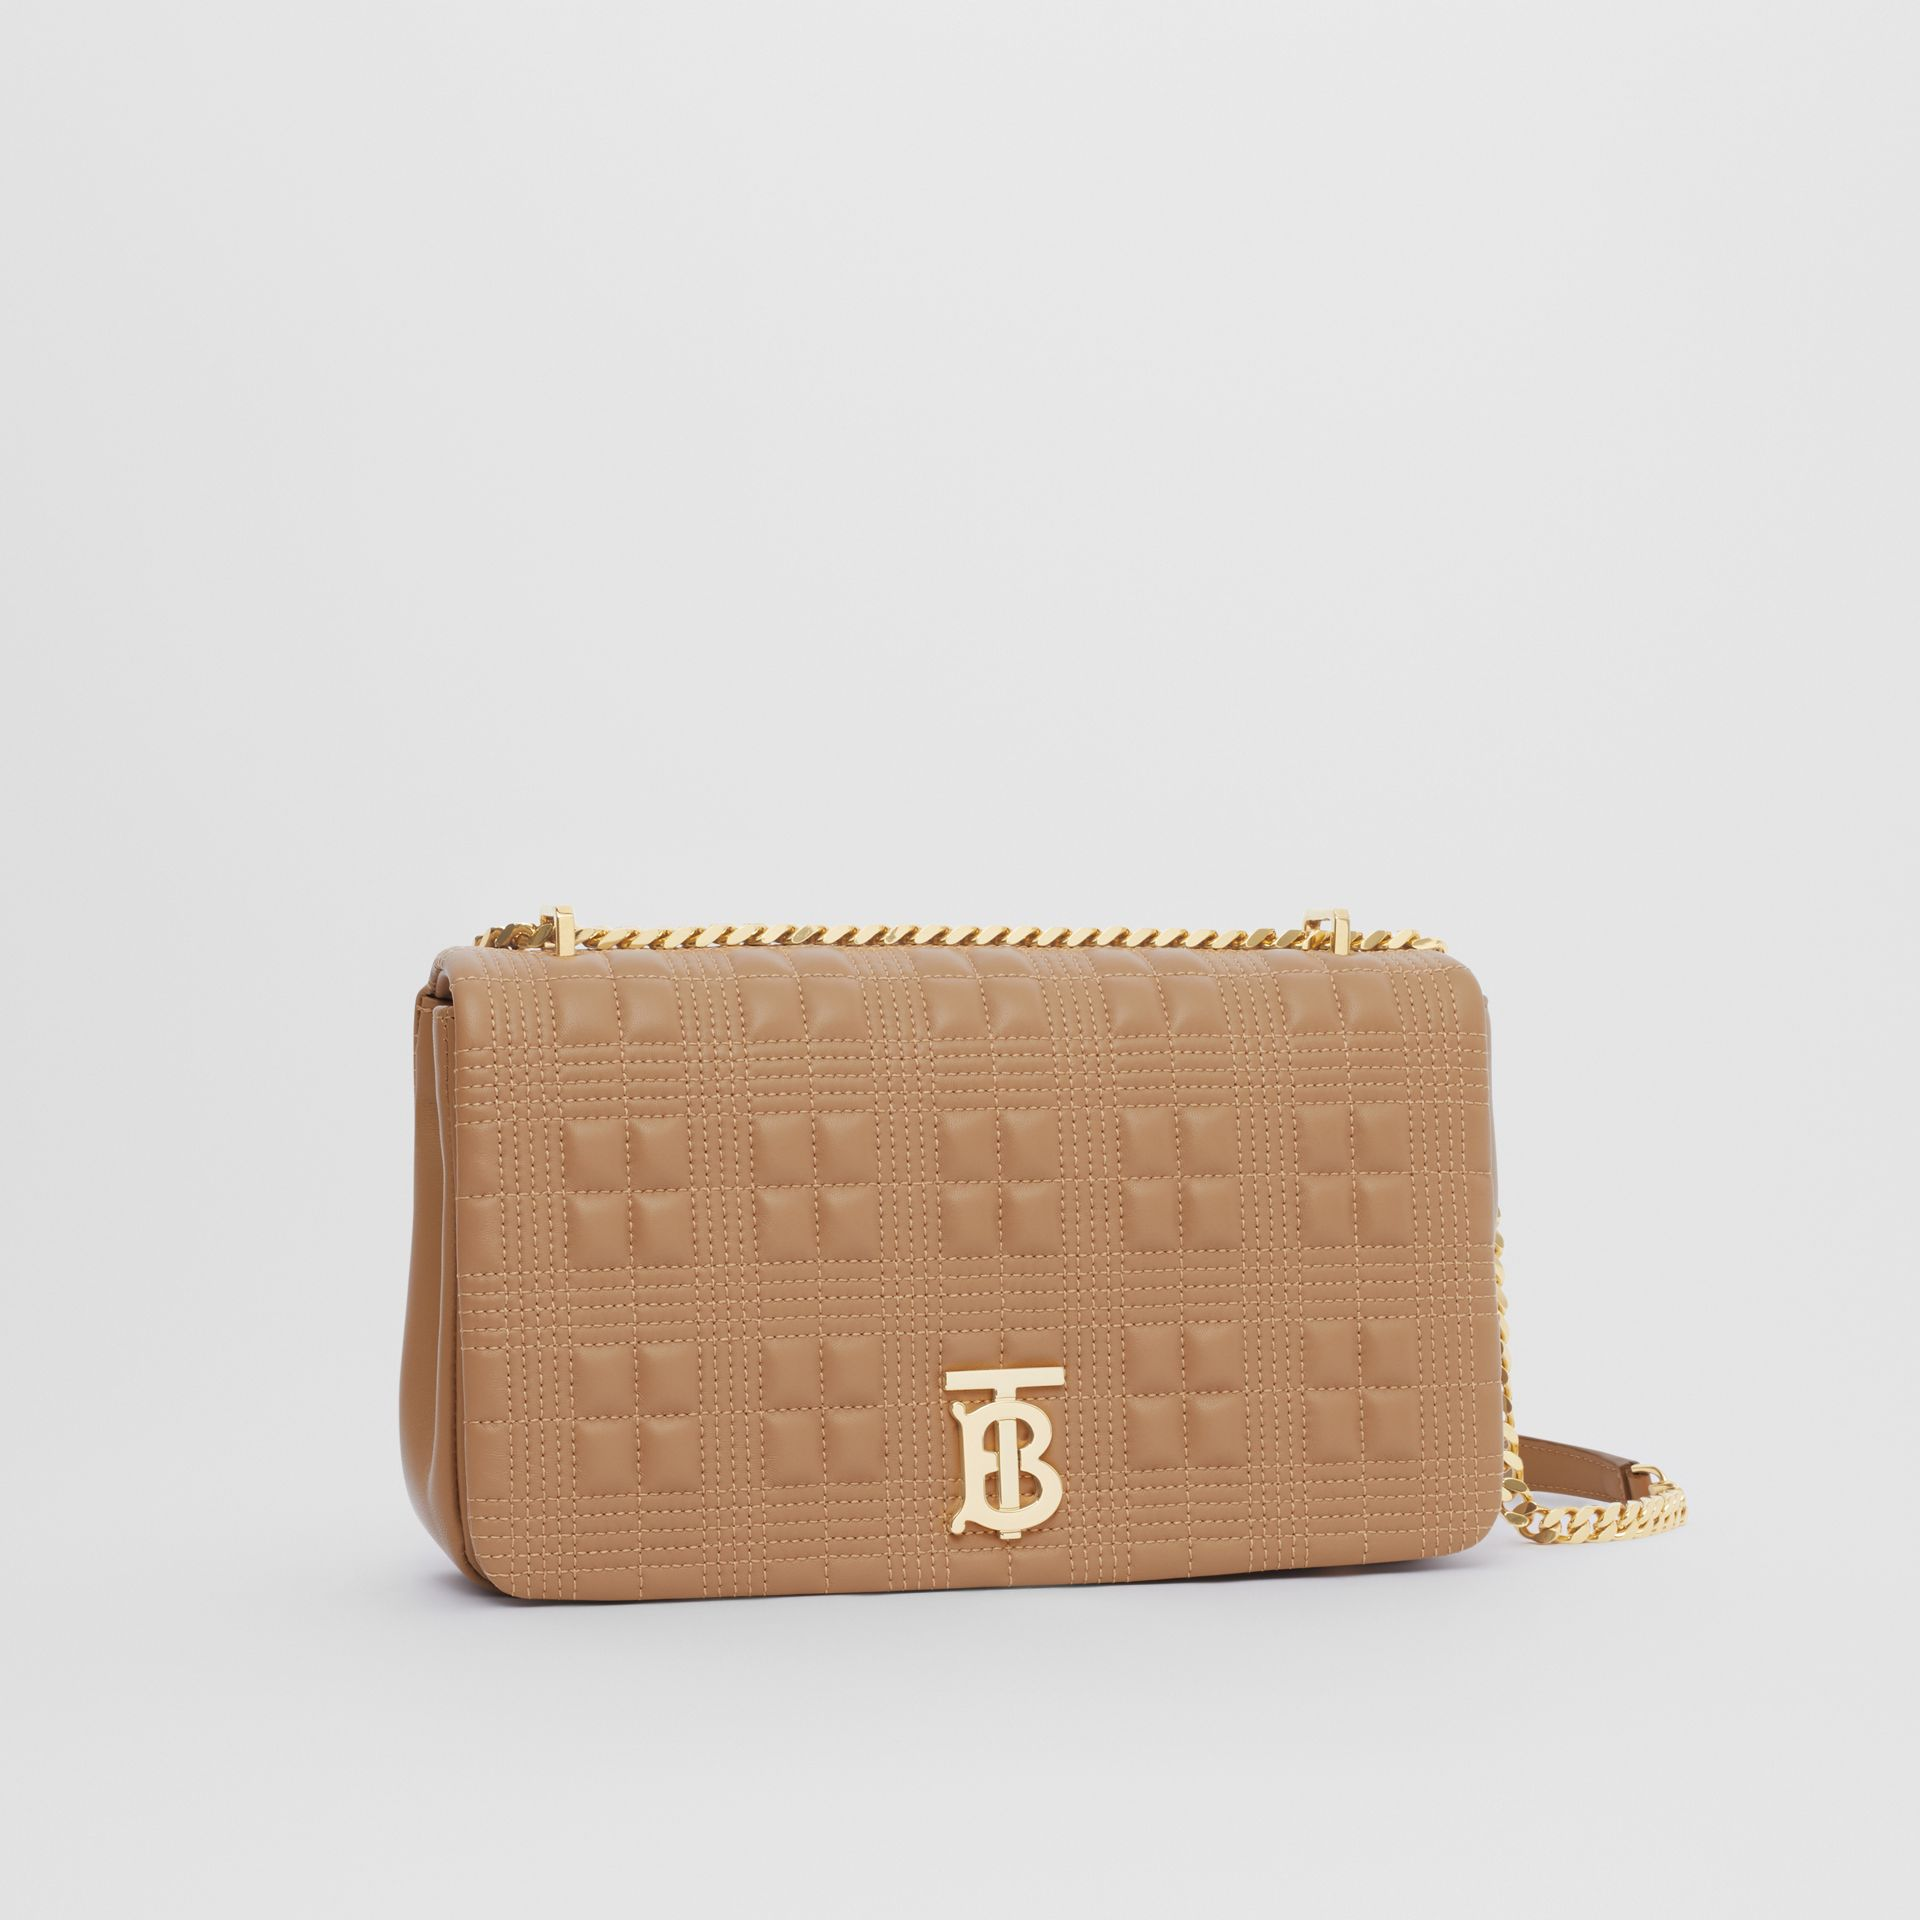 Medium Quilted Lambskin Lola Bag in Camel/light Gold - Women | Burberry - gallery image 6